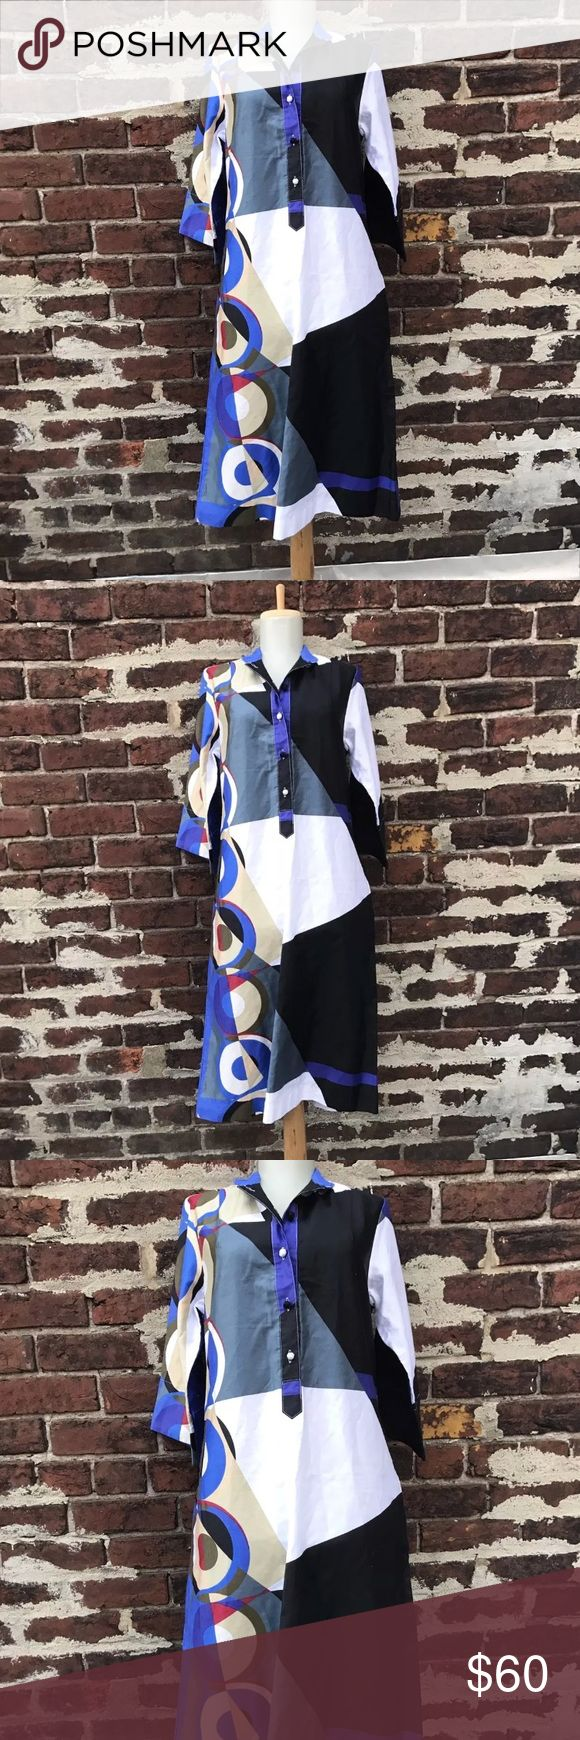 Vtg Catherine Ogust XS Mod Art 70s Shirt Dress You're looking at a beautiful vintage midi Penthouse Gallery dress by Catherine Ogust.   Size XS (I'd say due to the loose / swing fit of this, the sizing is accurate to modern sizing)  Cotton  Great vintage condition! Vintage Dresses